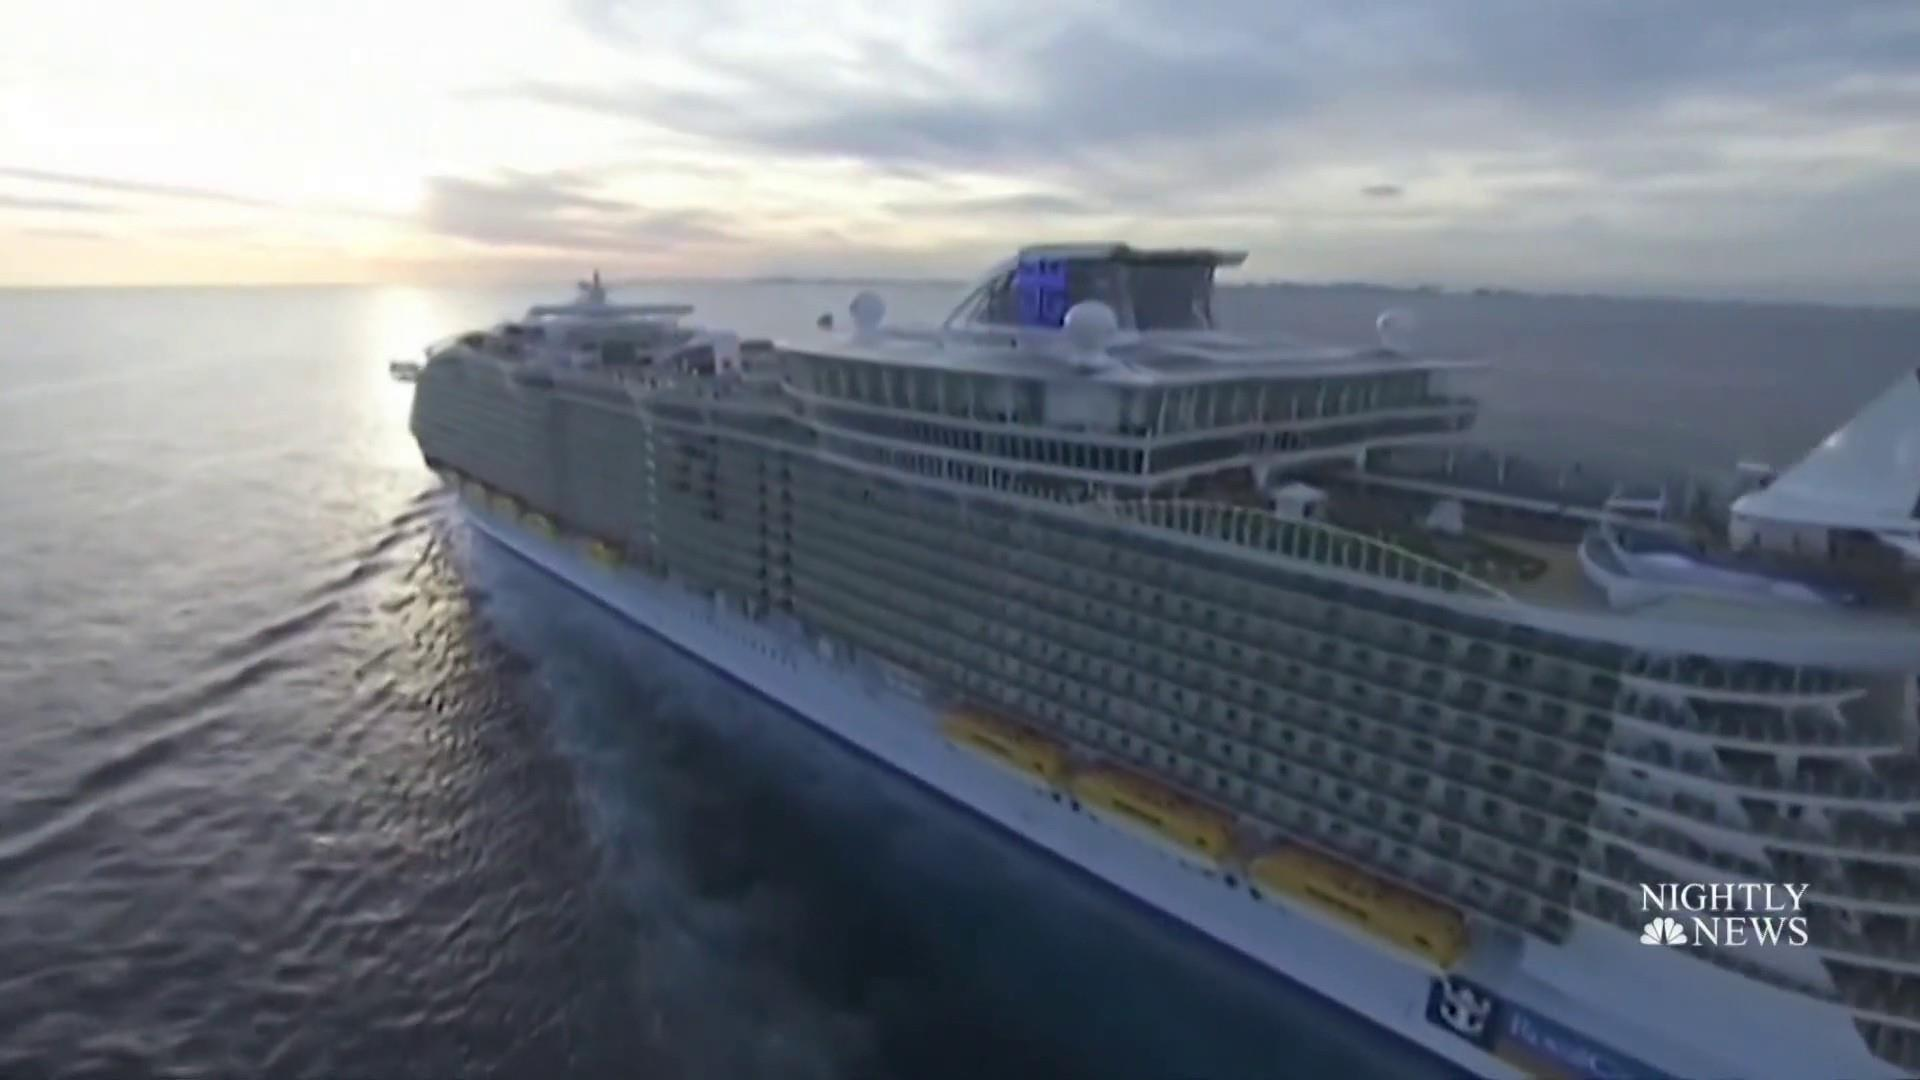 Nearly 500 people are now sick on Royal Caribbean cruise ship